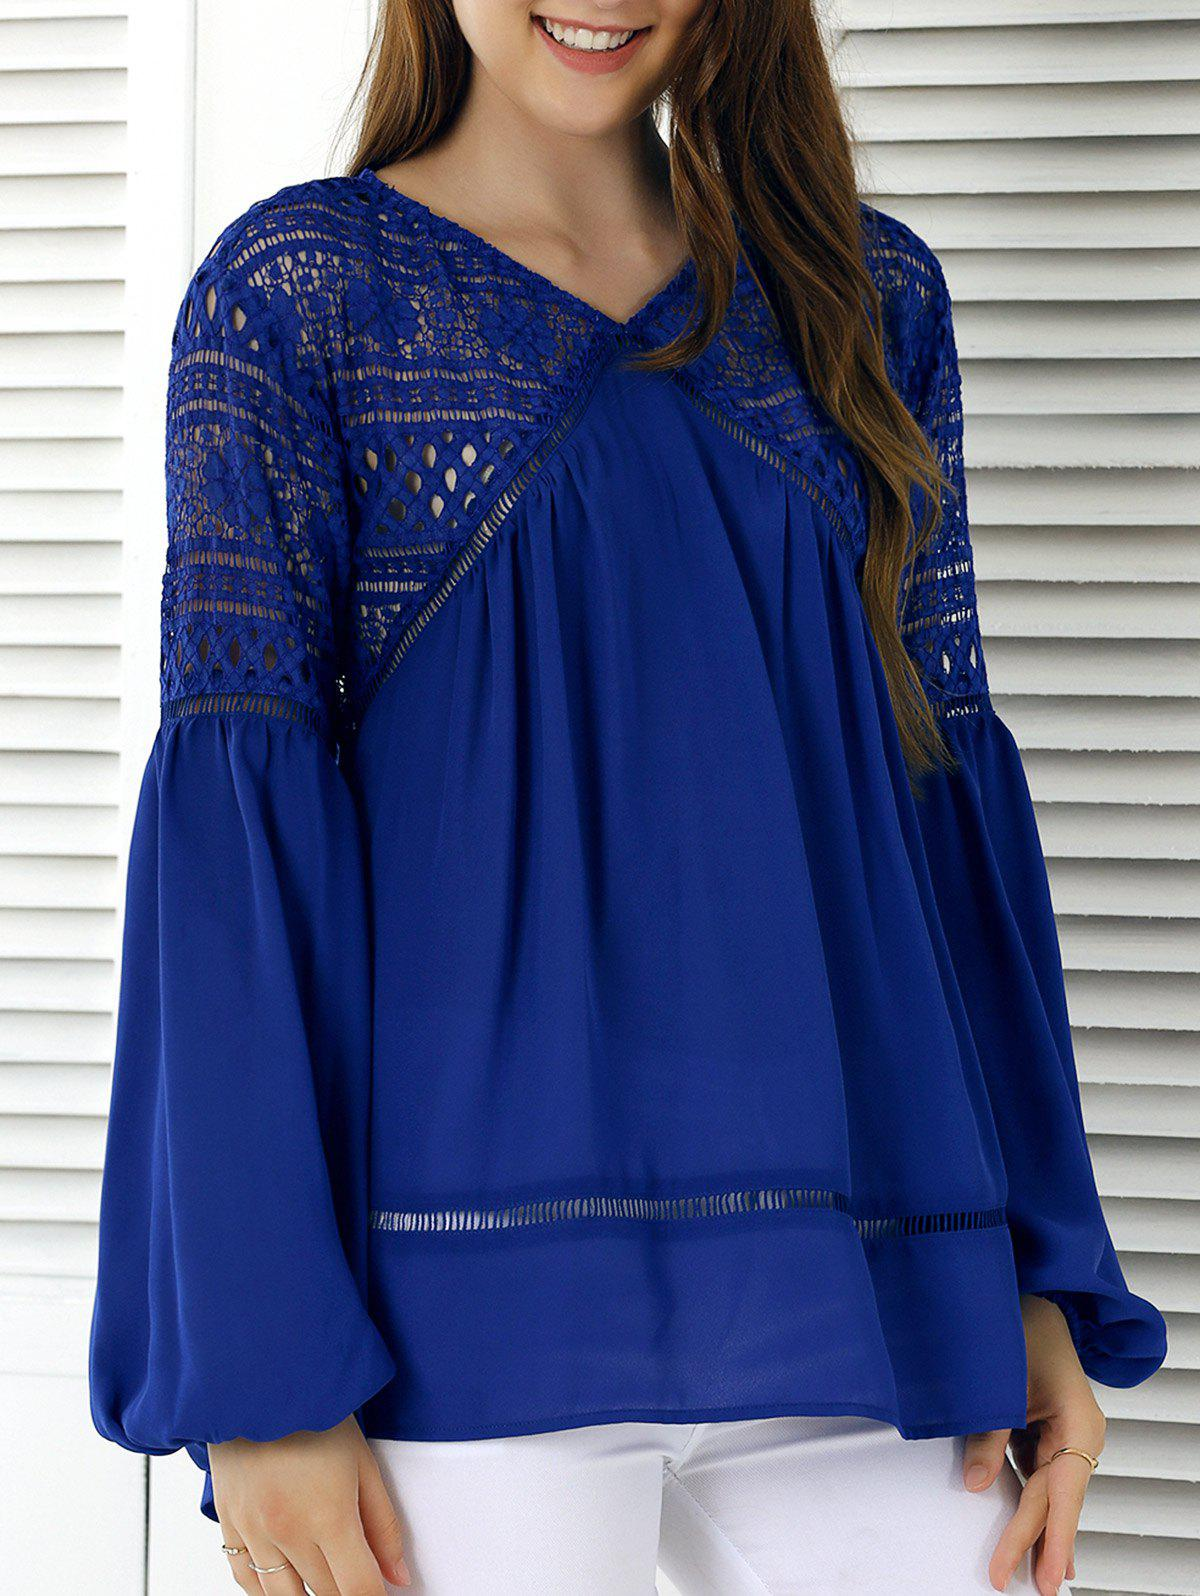 Lace Splicing Lantern Sleeve Hollow Out Blouse - SAPPHIRE BLUE XL